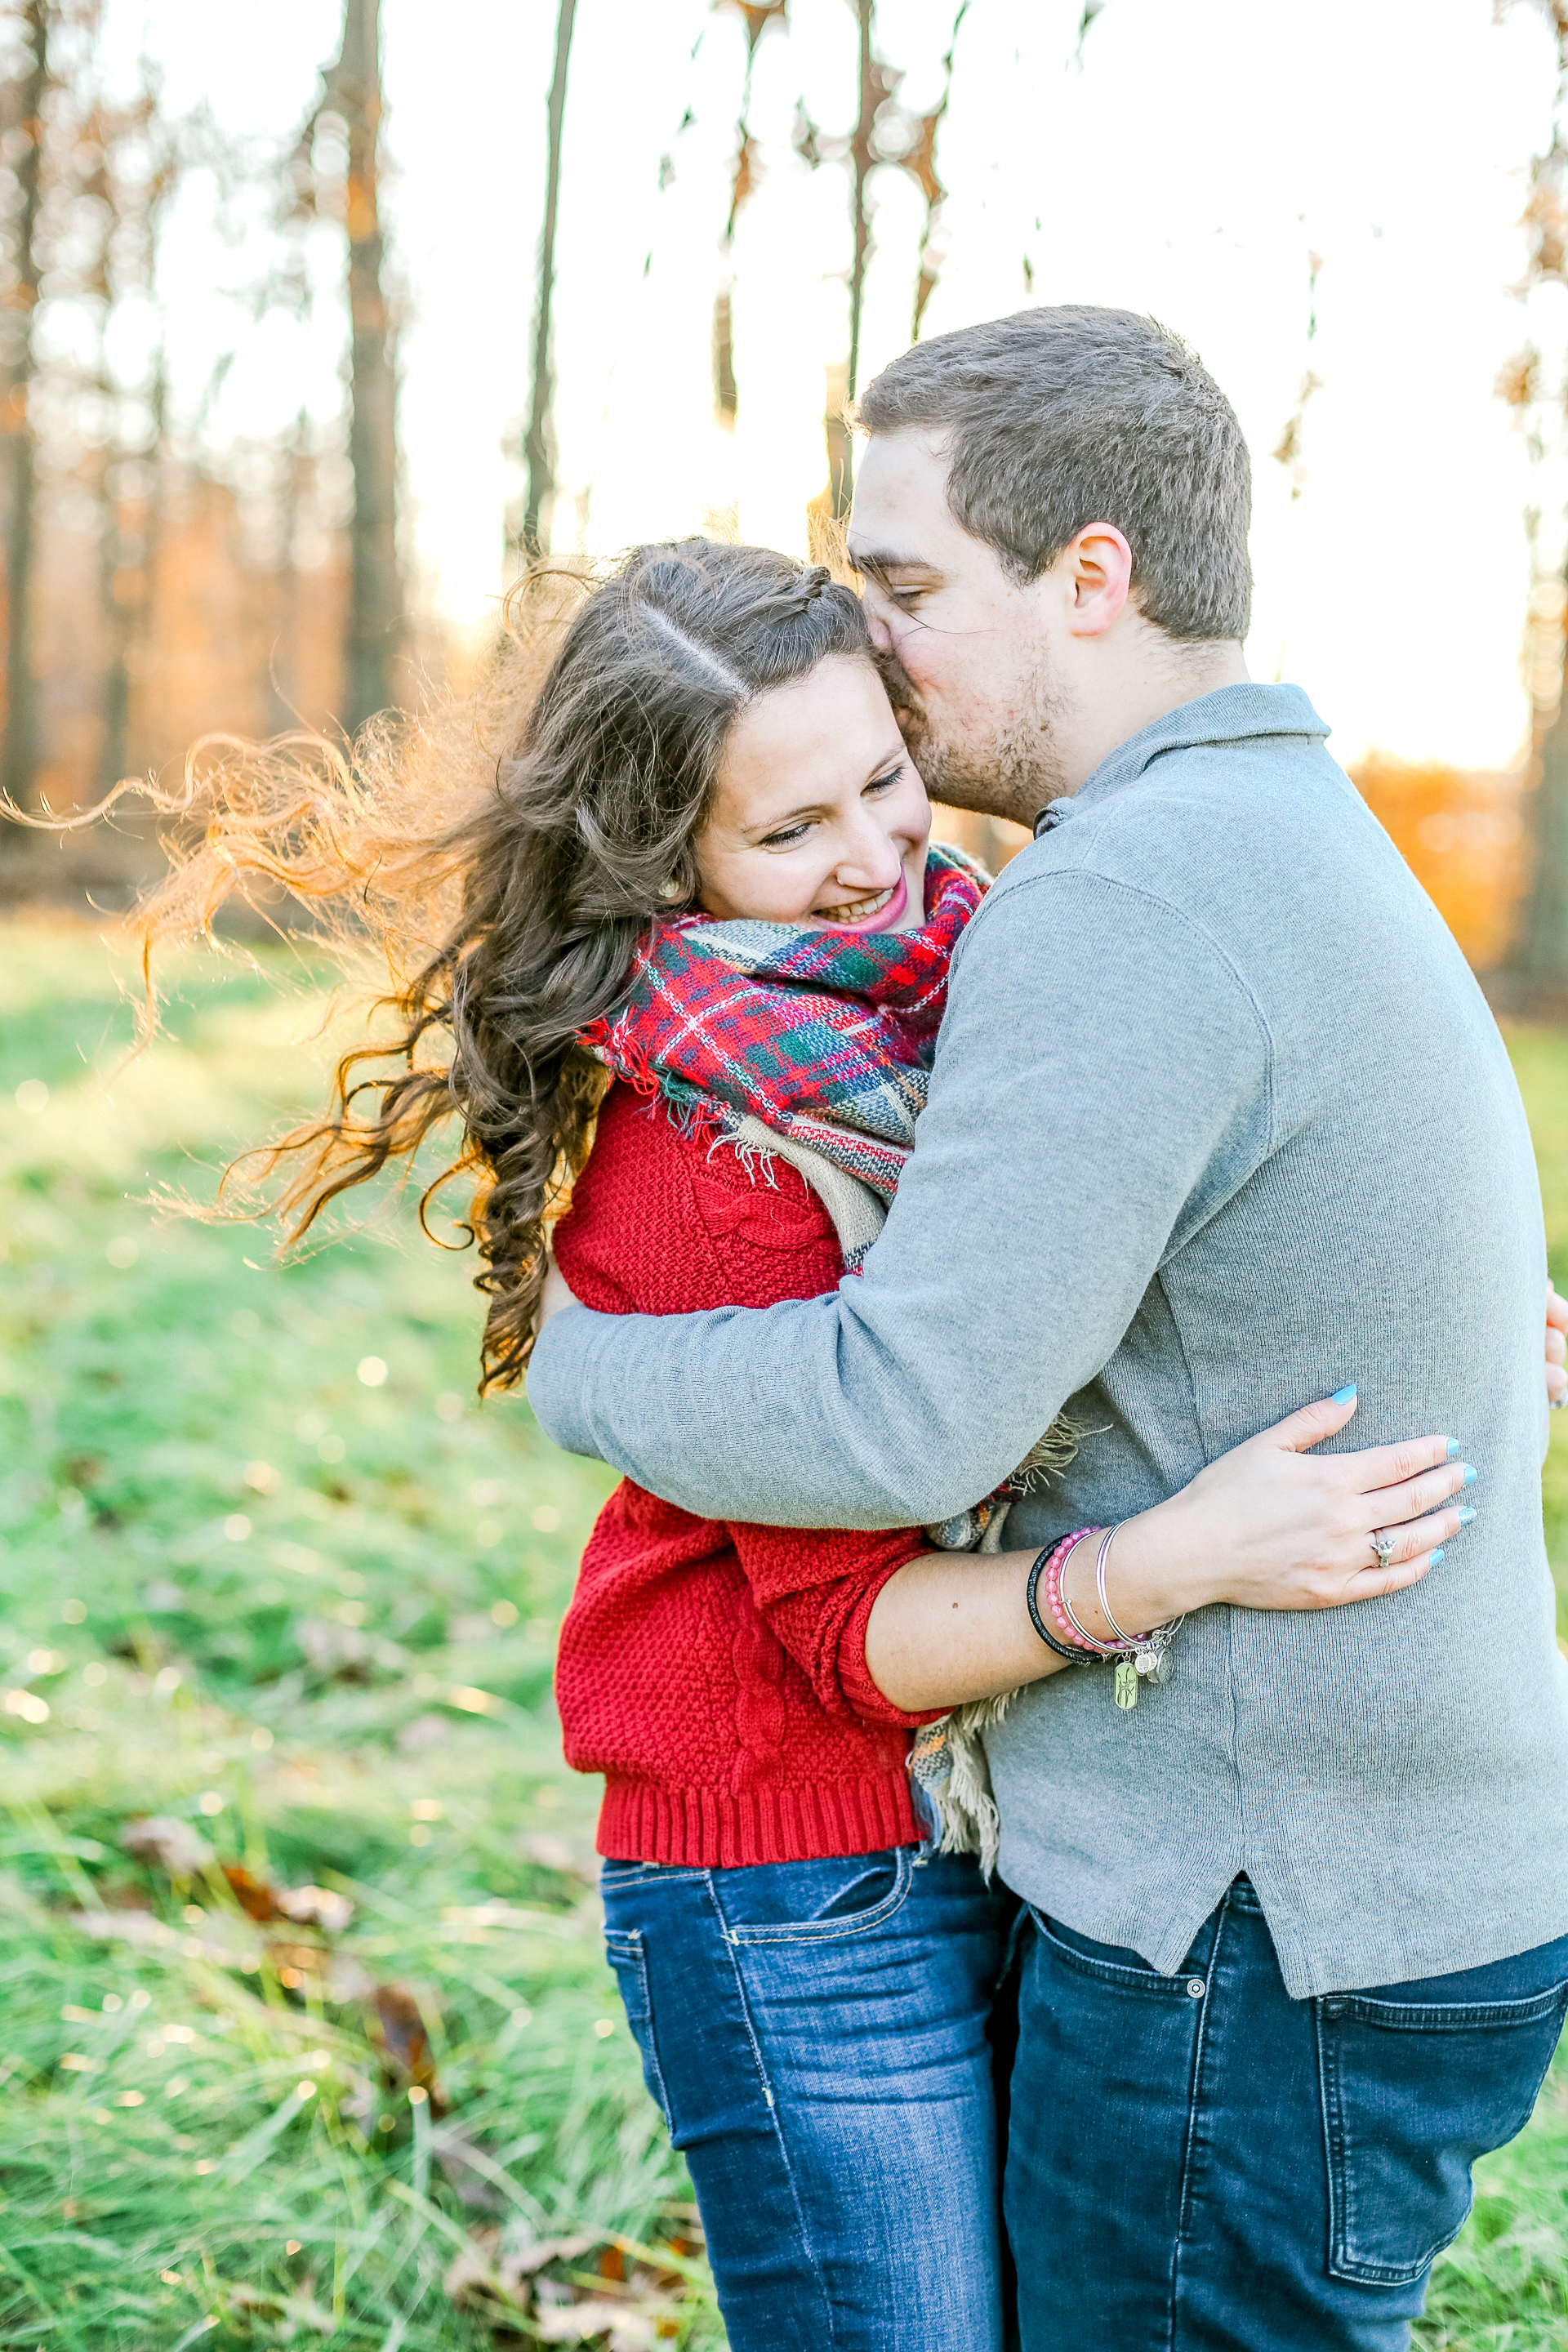 Bucks county Peace Valley Park Doylestown Lehigh Valley fall windy engagement session wedding and lifestyle photographer Lytle Photo Co (50 of 109).jpg